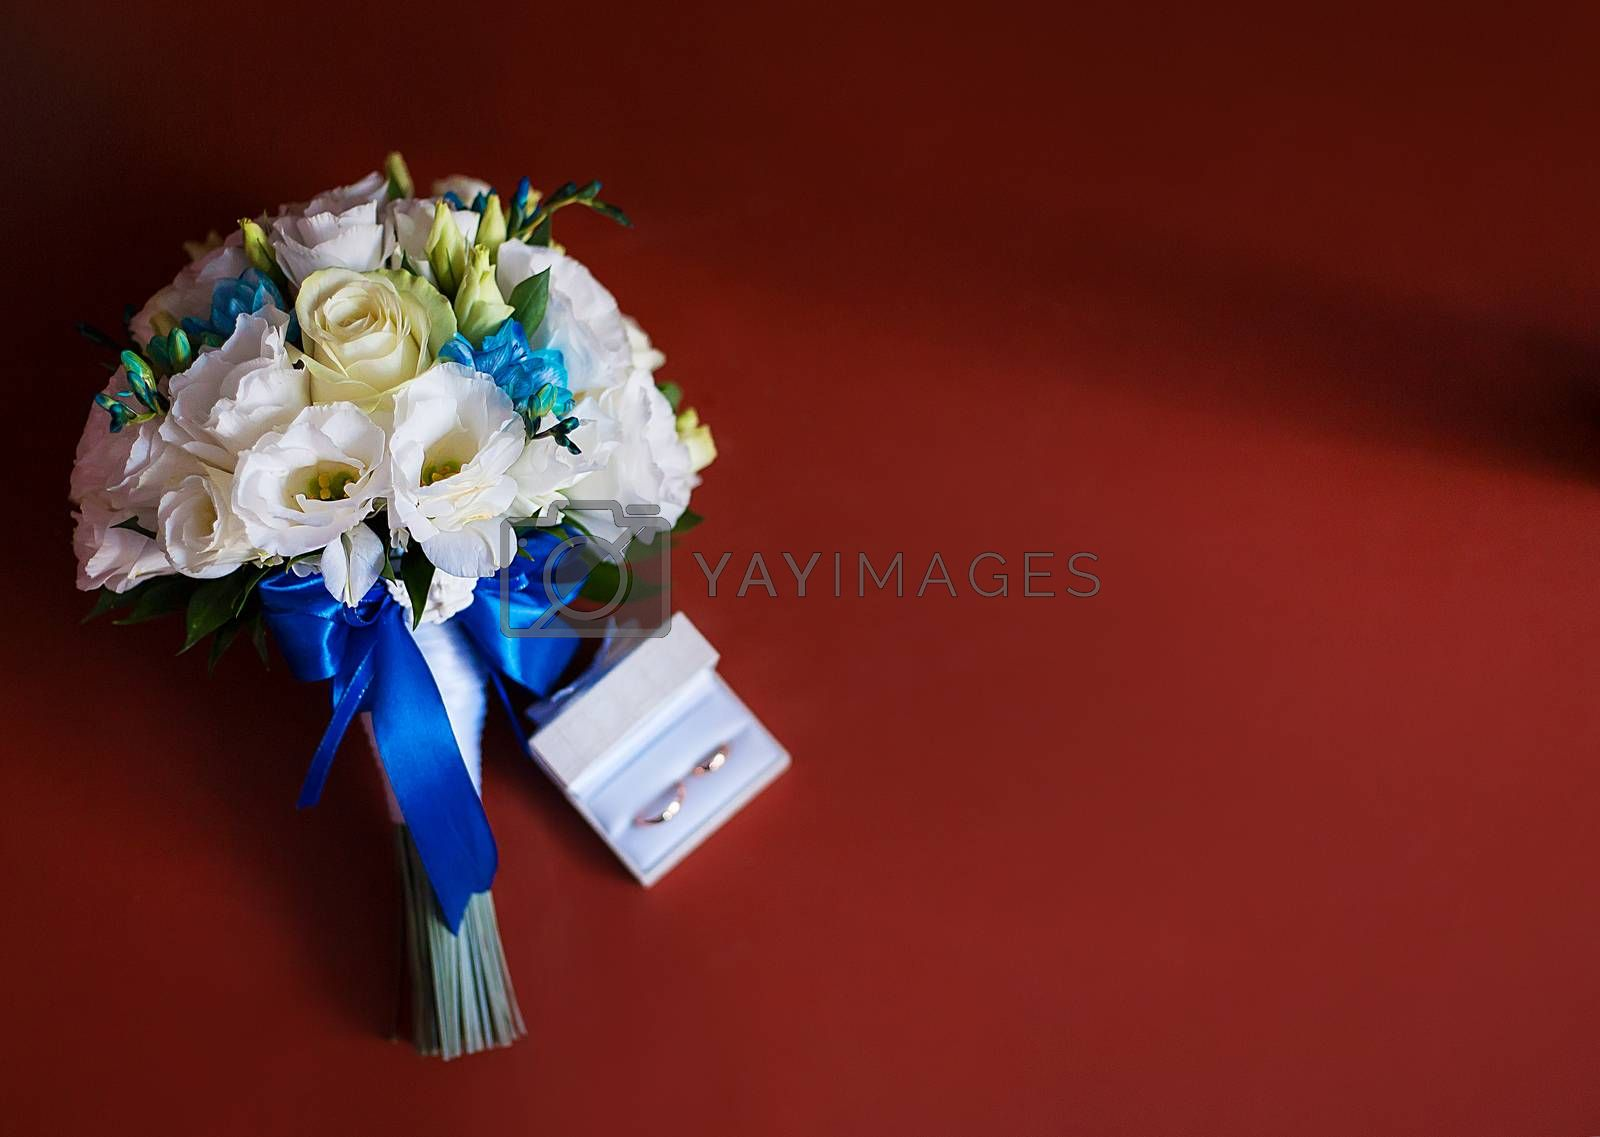 Royalty free image of Wedding rings with a bridal bouquet of white roses by sfinks